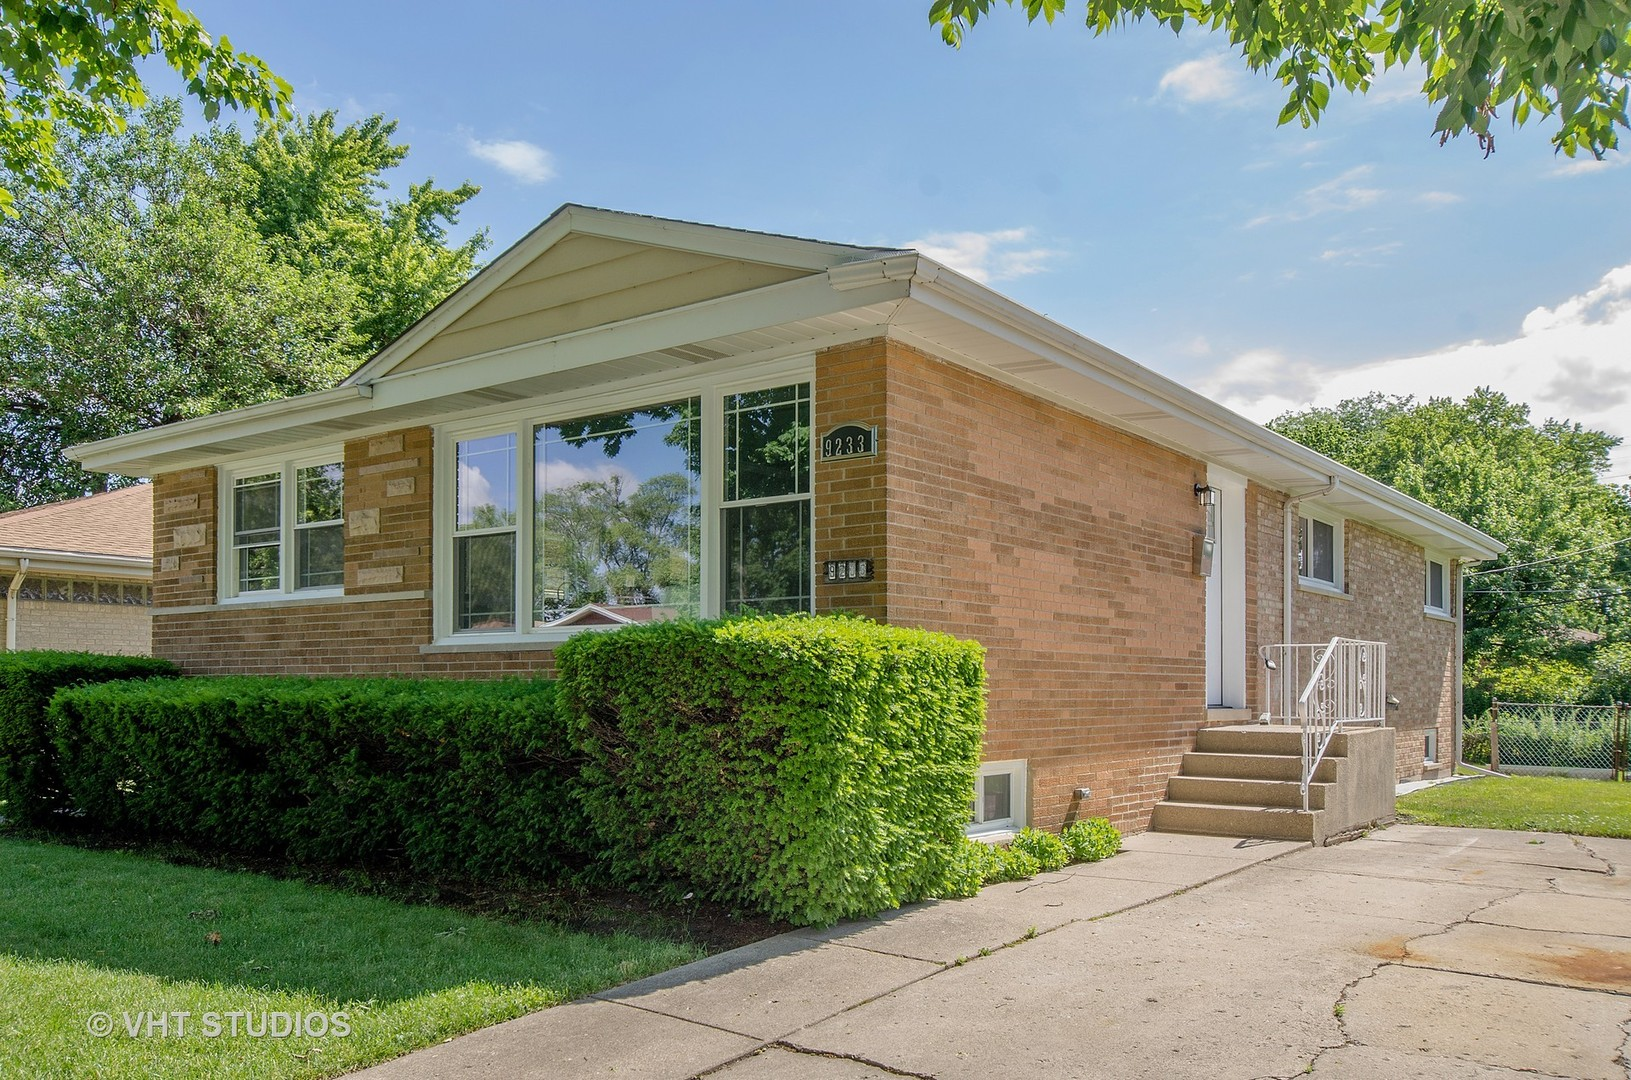 9233 Keating Avenue, Skokie in Cook County, IL 60076 Home for Sale